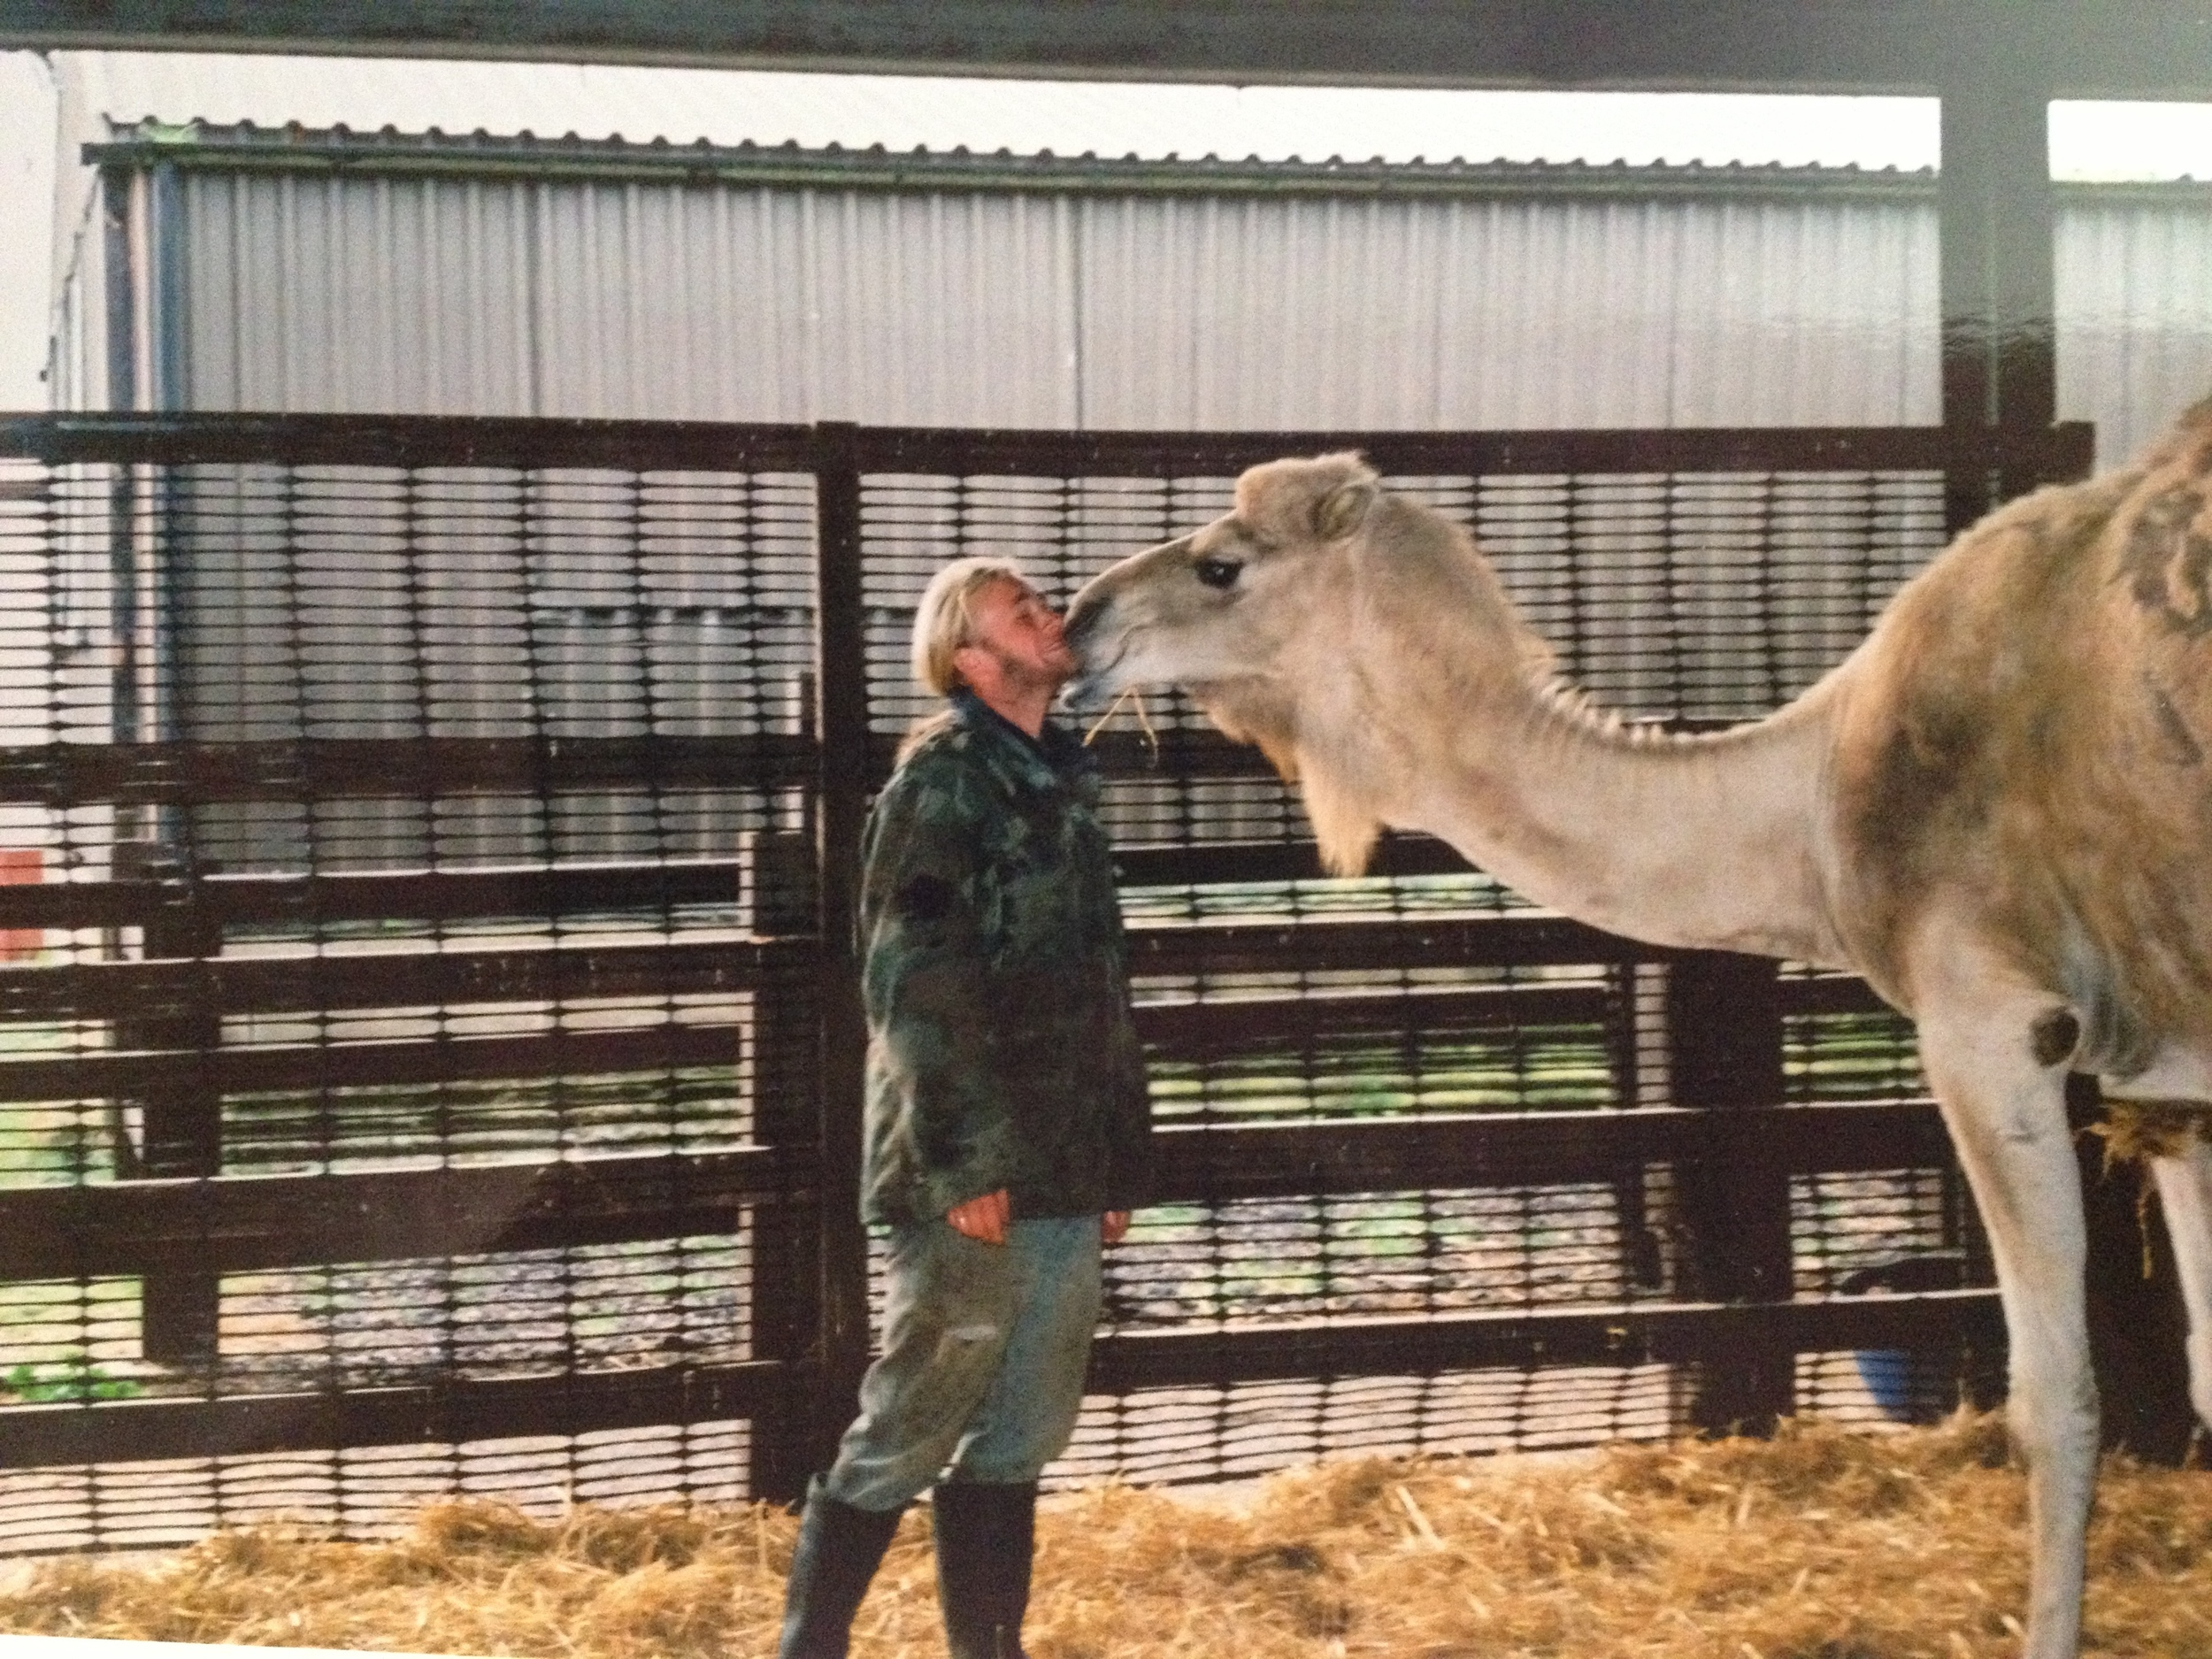 Getting a kiss from Topsy the camel!